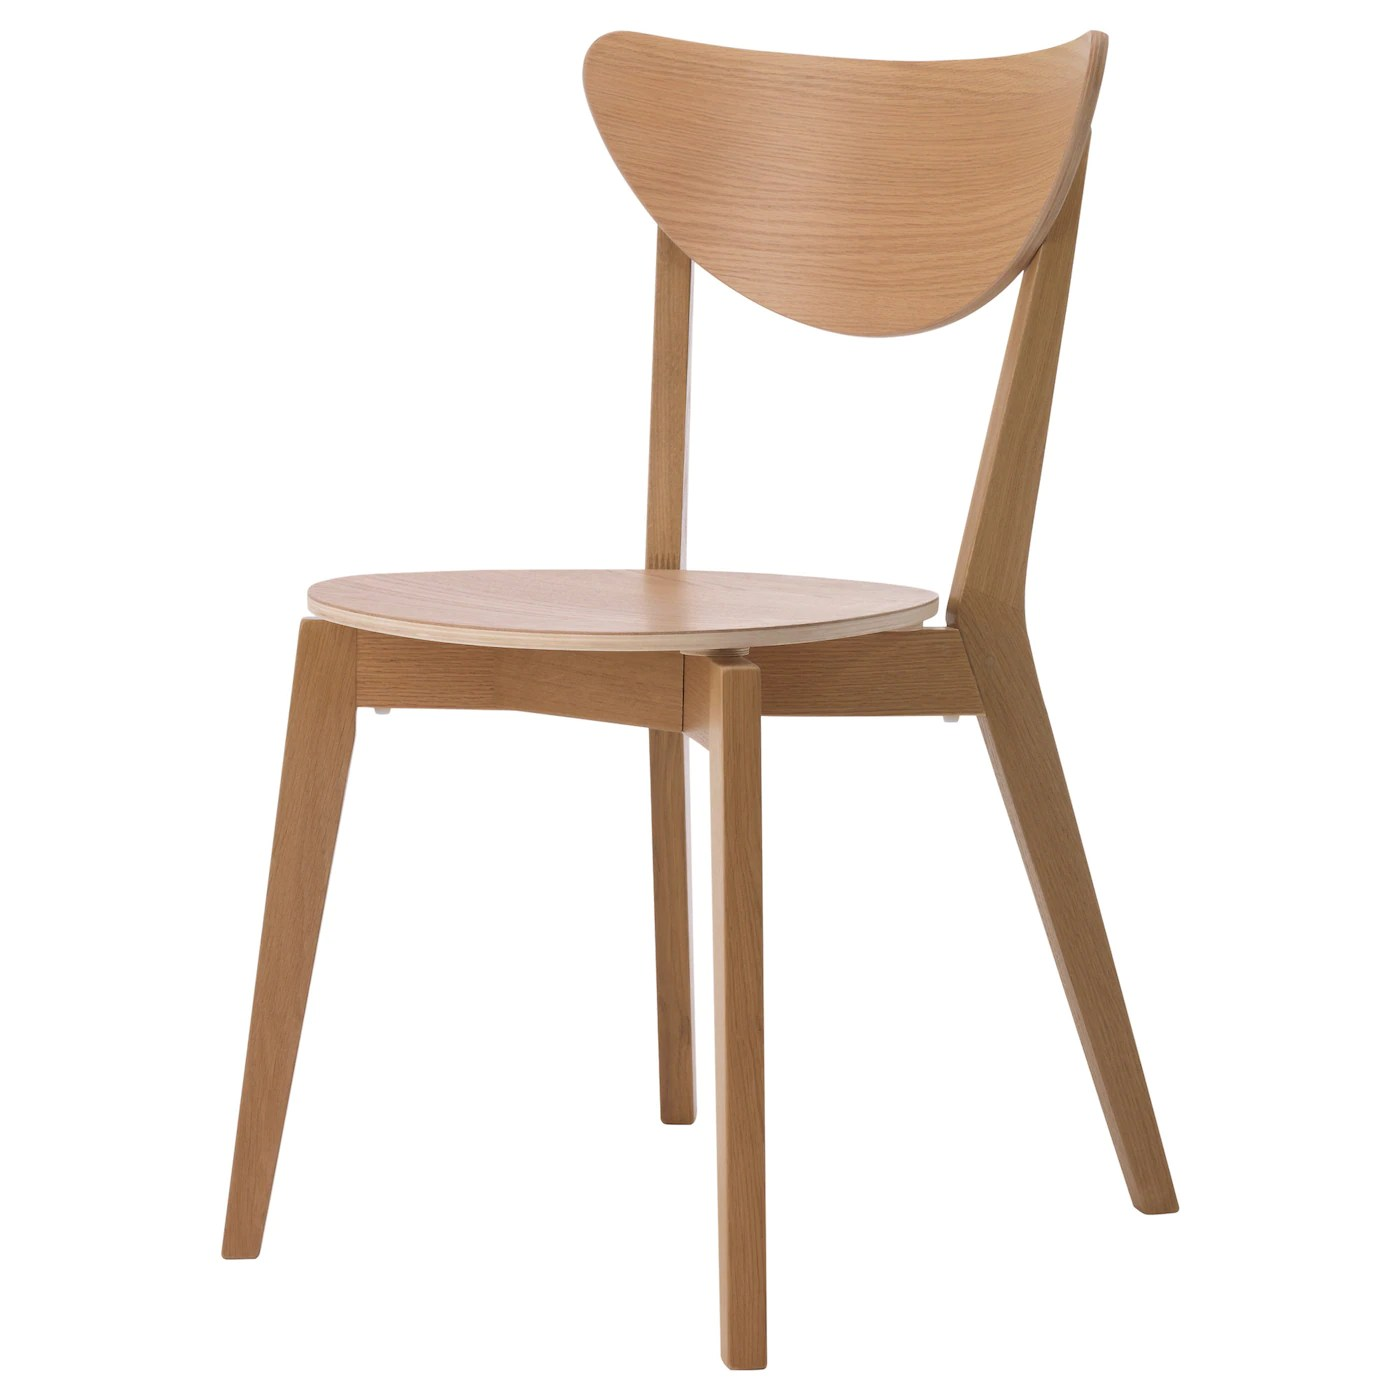 pine kitchen chairs ireland first class chair special needs dining visit ikea dublin nordmyra you can stack the so they take less space when